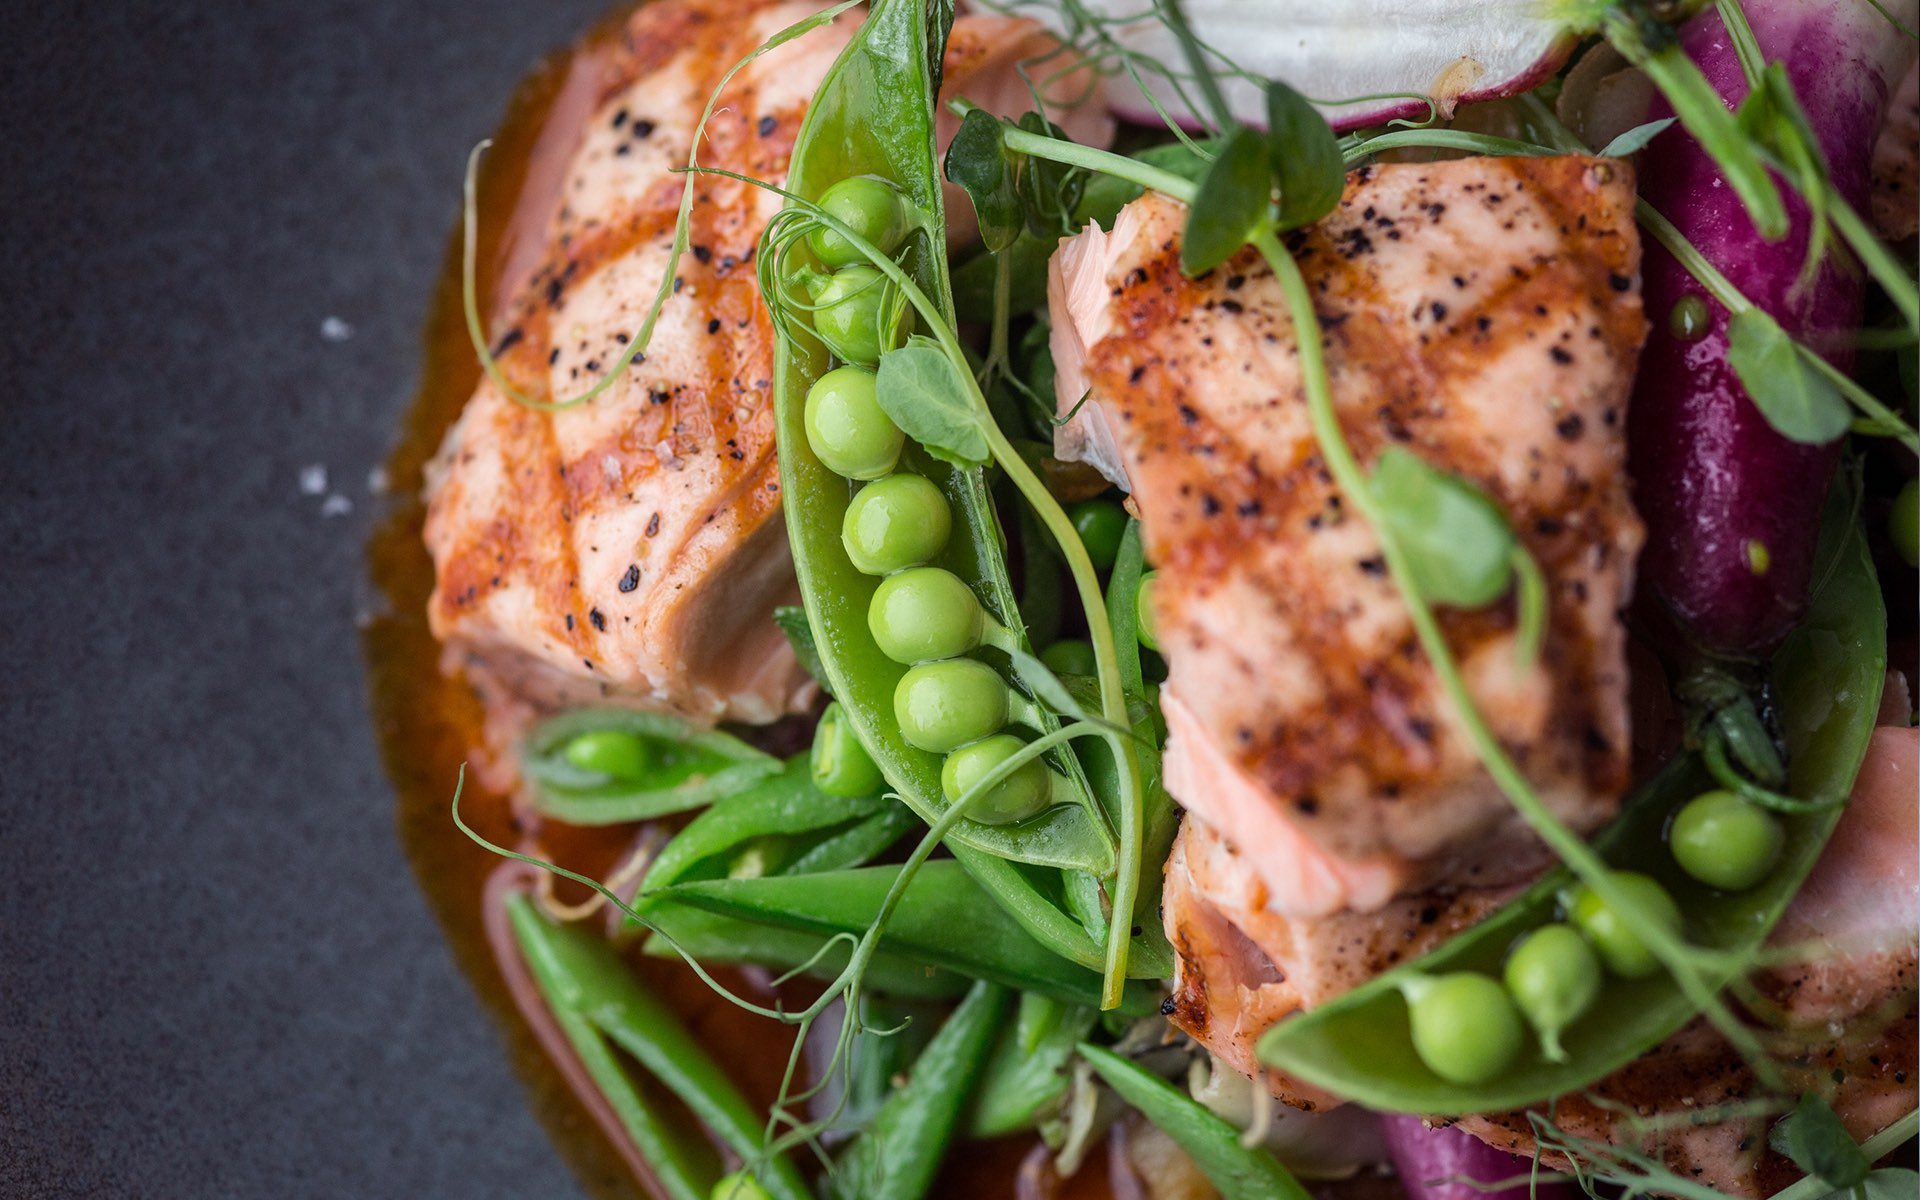 plate of grilled salmon with microgreens and peas